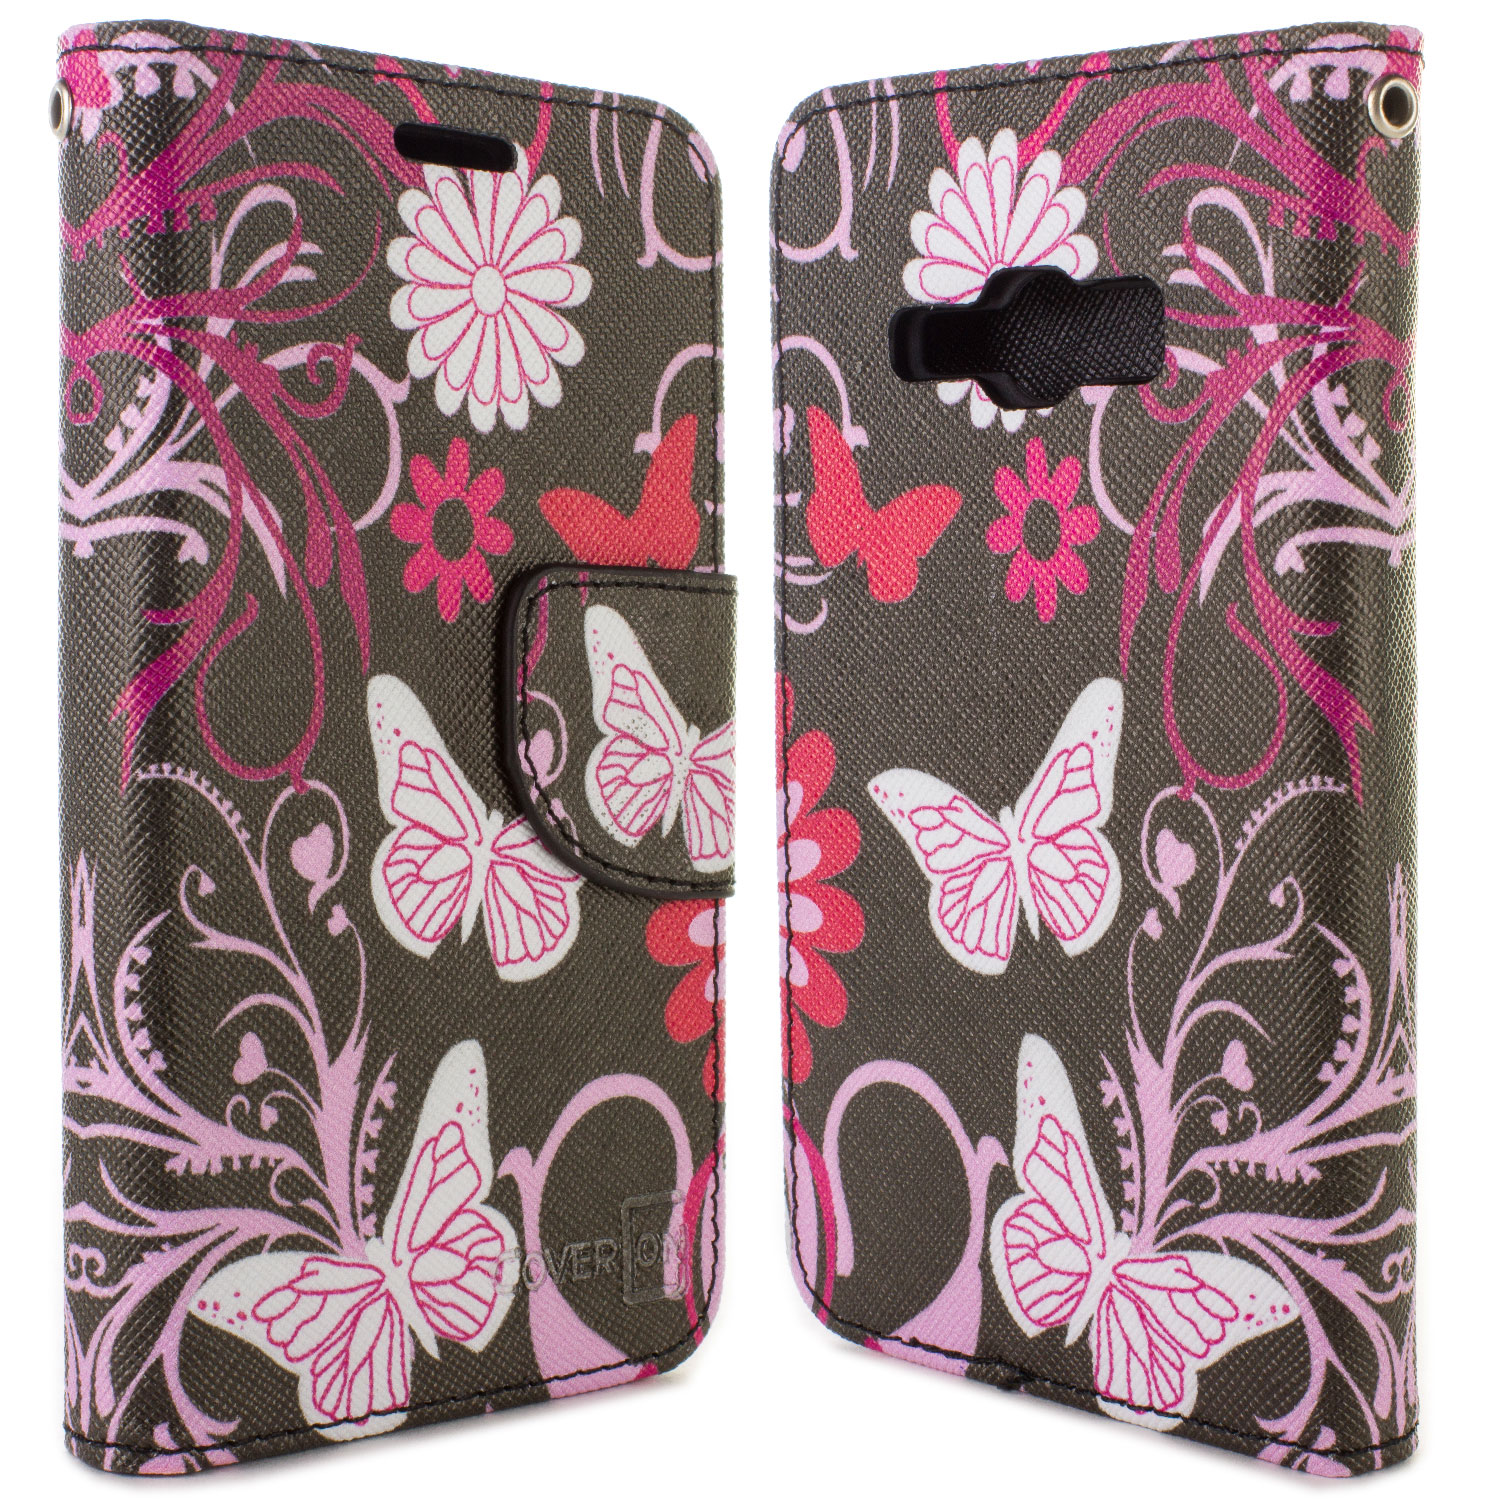 best service 7753d 23578 Details about Pink Butterfly Wallet Pouch Cover Credit Card Case For  Samsung Galaxy J1 Ace